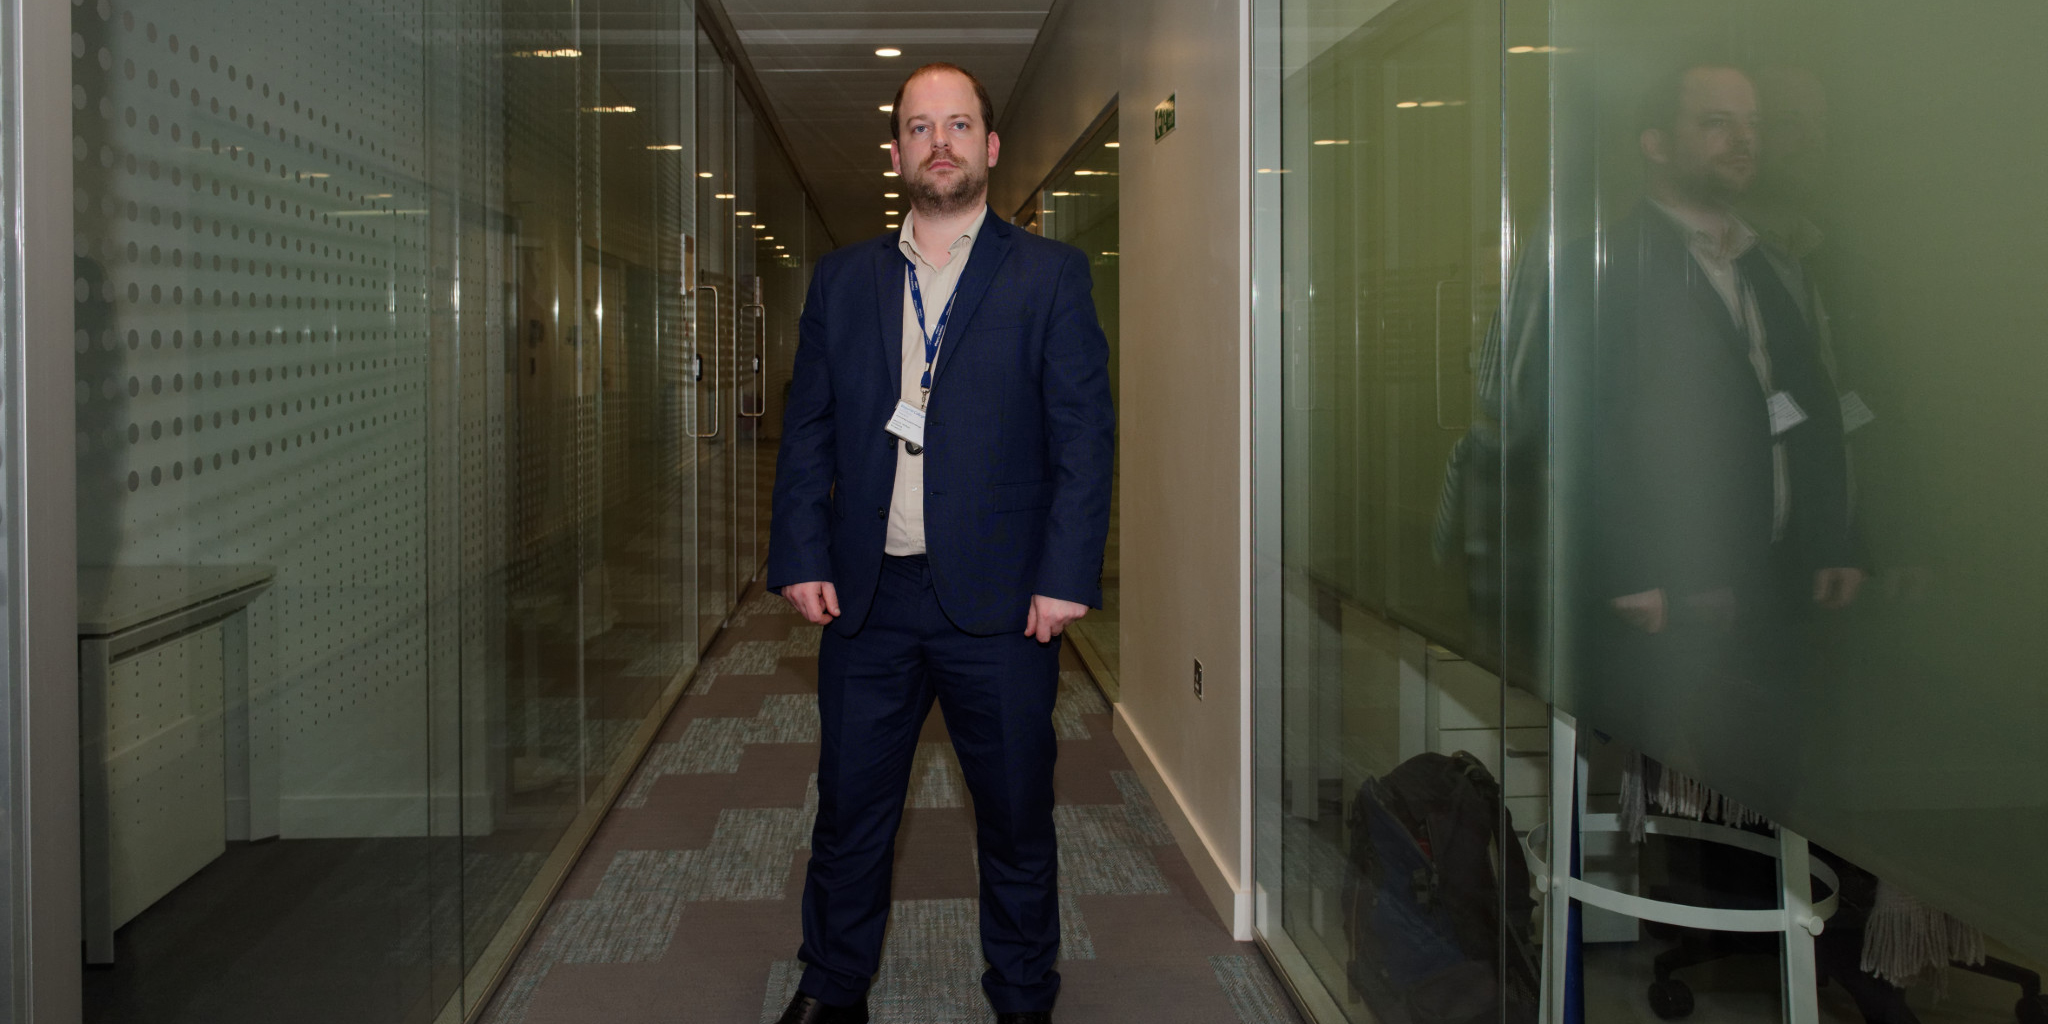 Graham Hewson, Imperial Incubator Manager